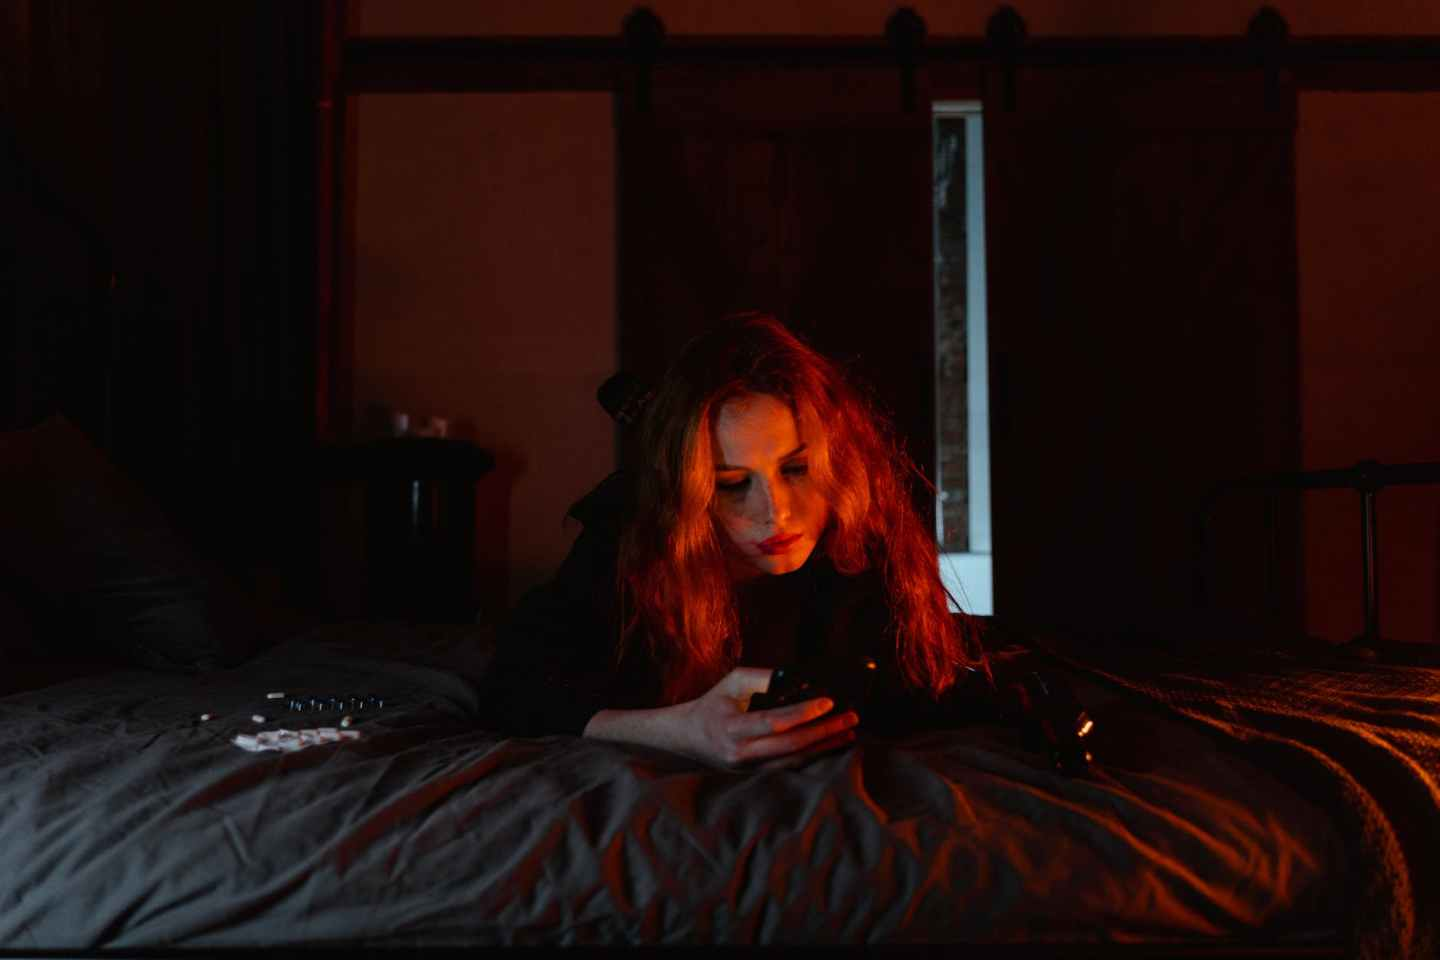 woman lying on bed with cellphone